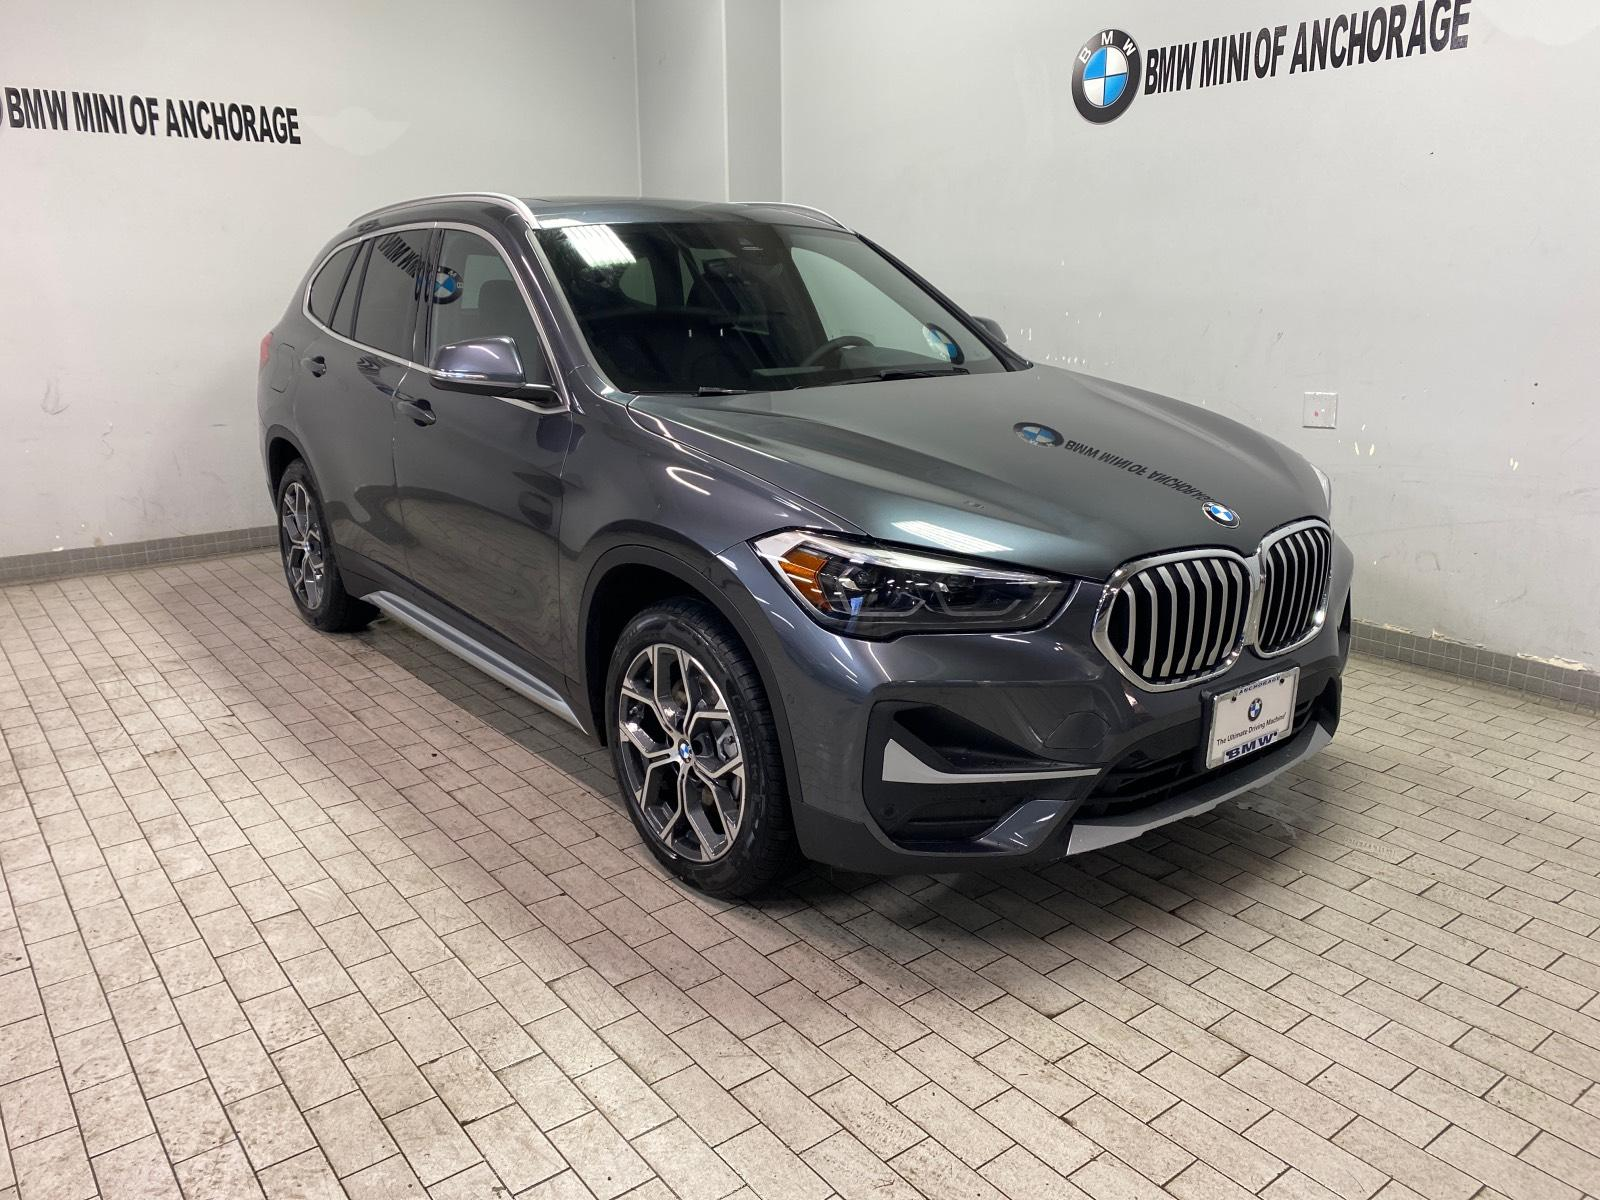 New 2021 Bmw X1 Sav Xdrive28i Mineral Gray For Sale In Anchorage Ak Stock M3m75414